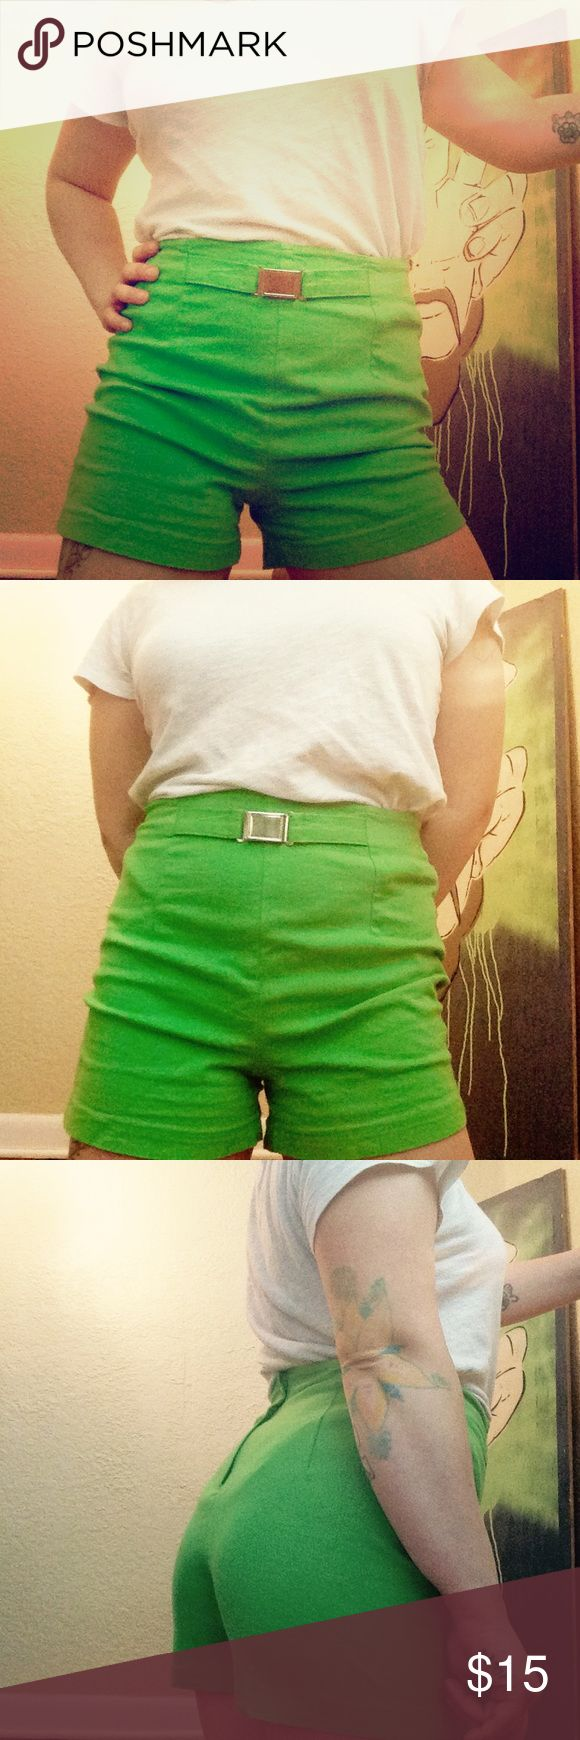 Vintage 90's Lime Shorts Vintage HighWaist 90's Route66 Lime Green Shorts Route 66 Shorts